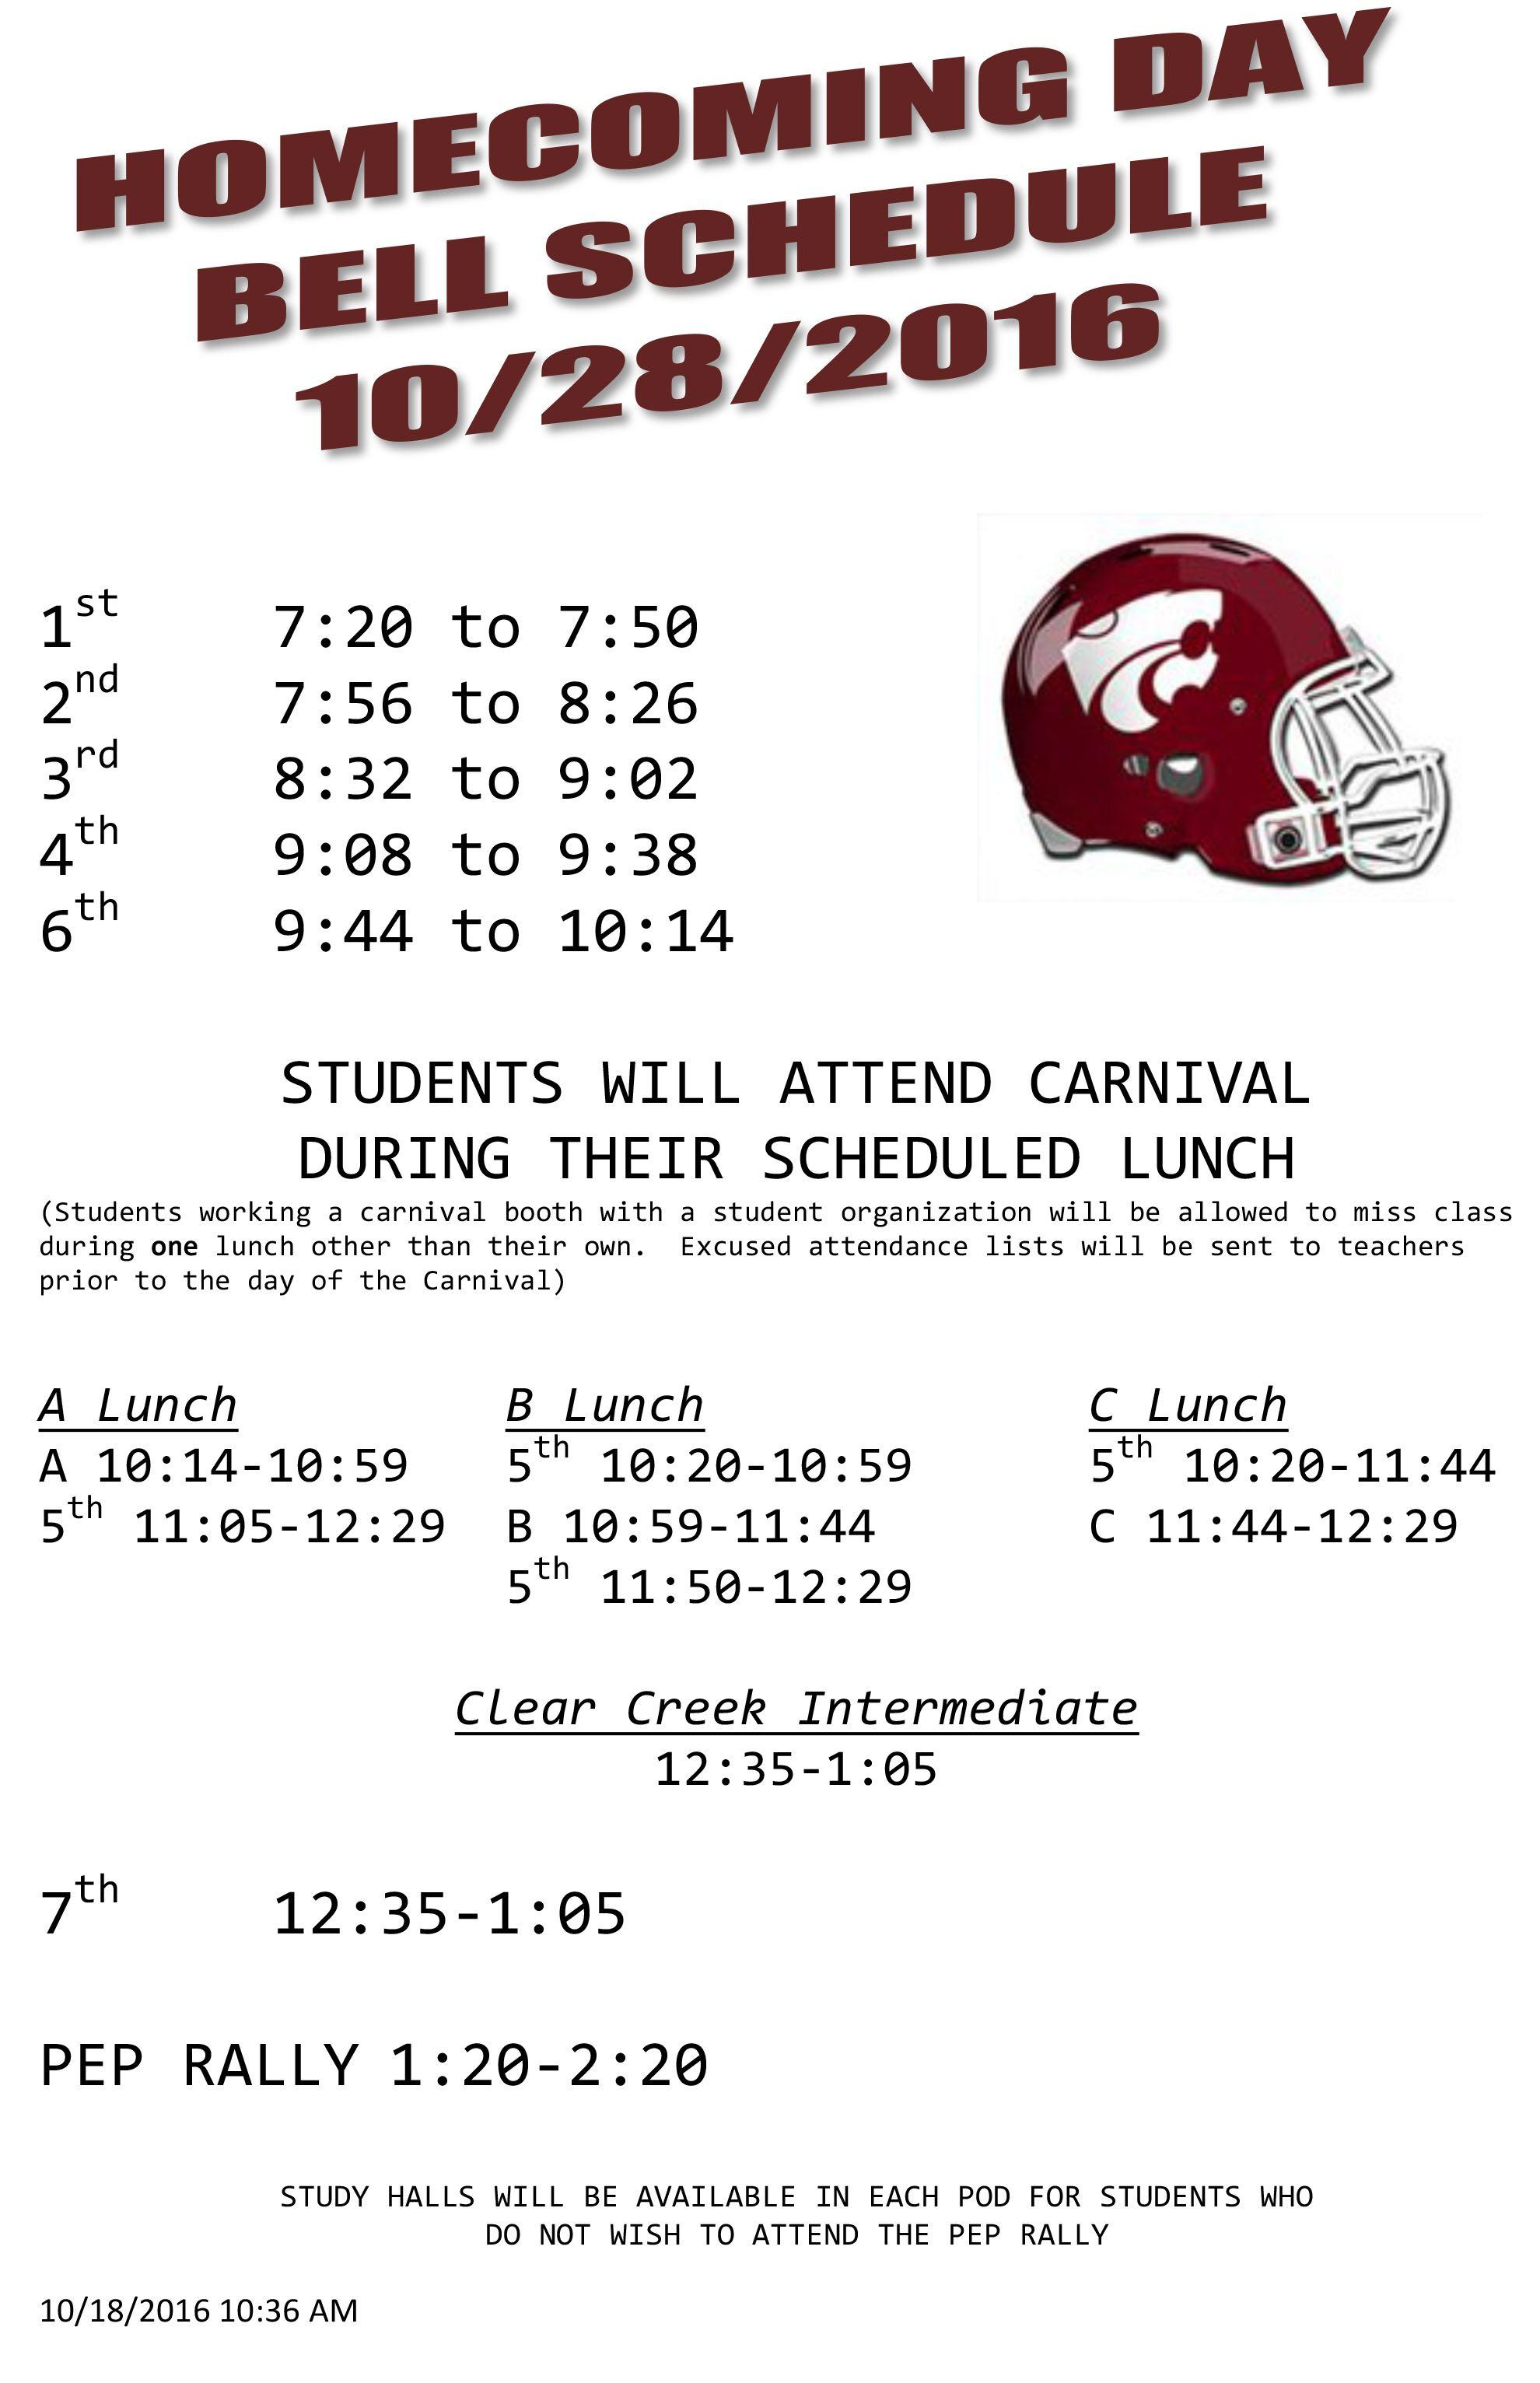 Microsoft Word - 2016 Homecoming Bell Schedule Draft 1.docx